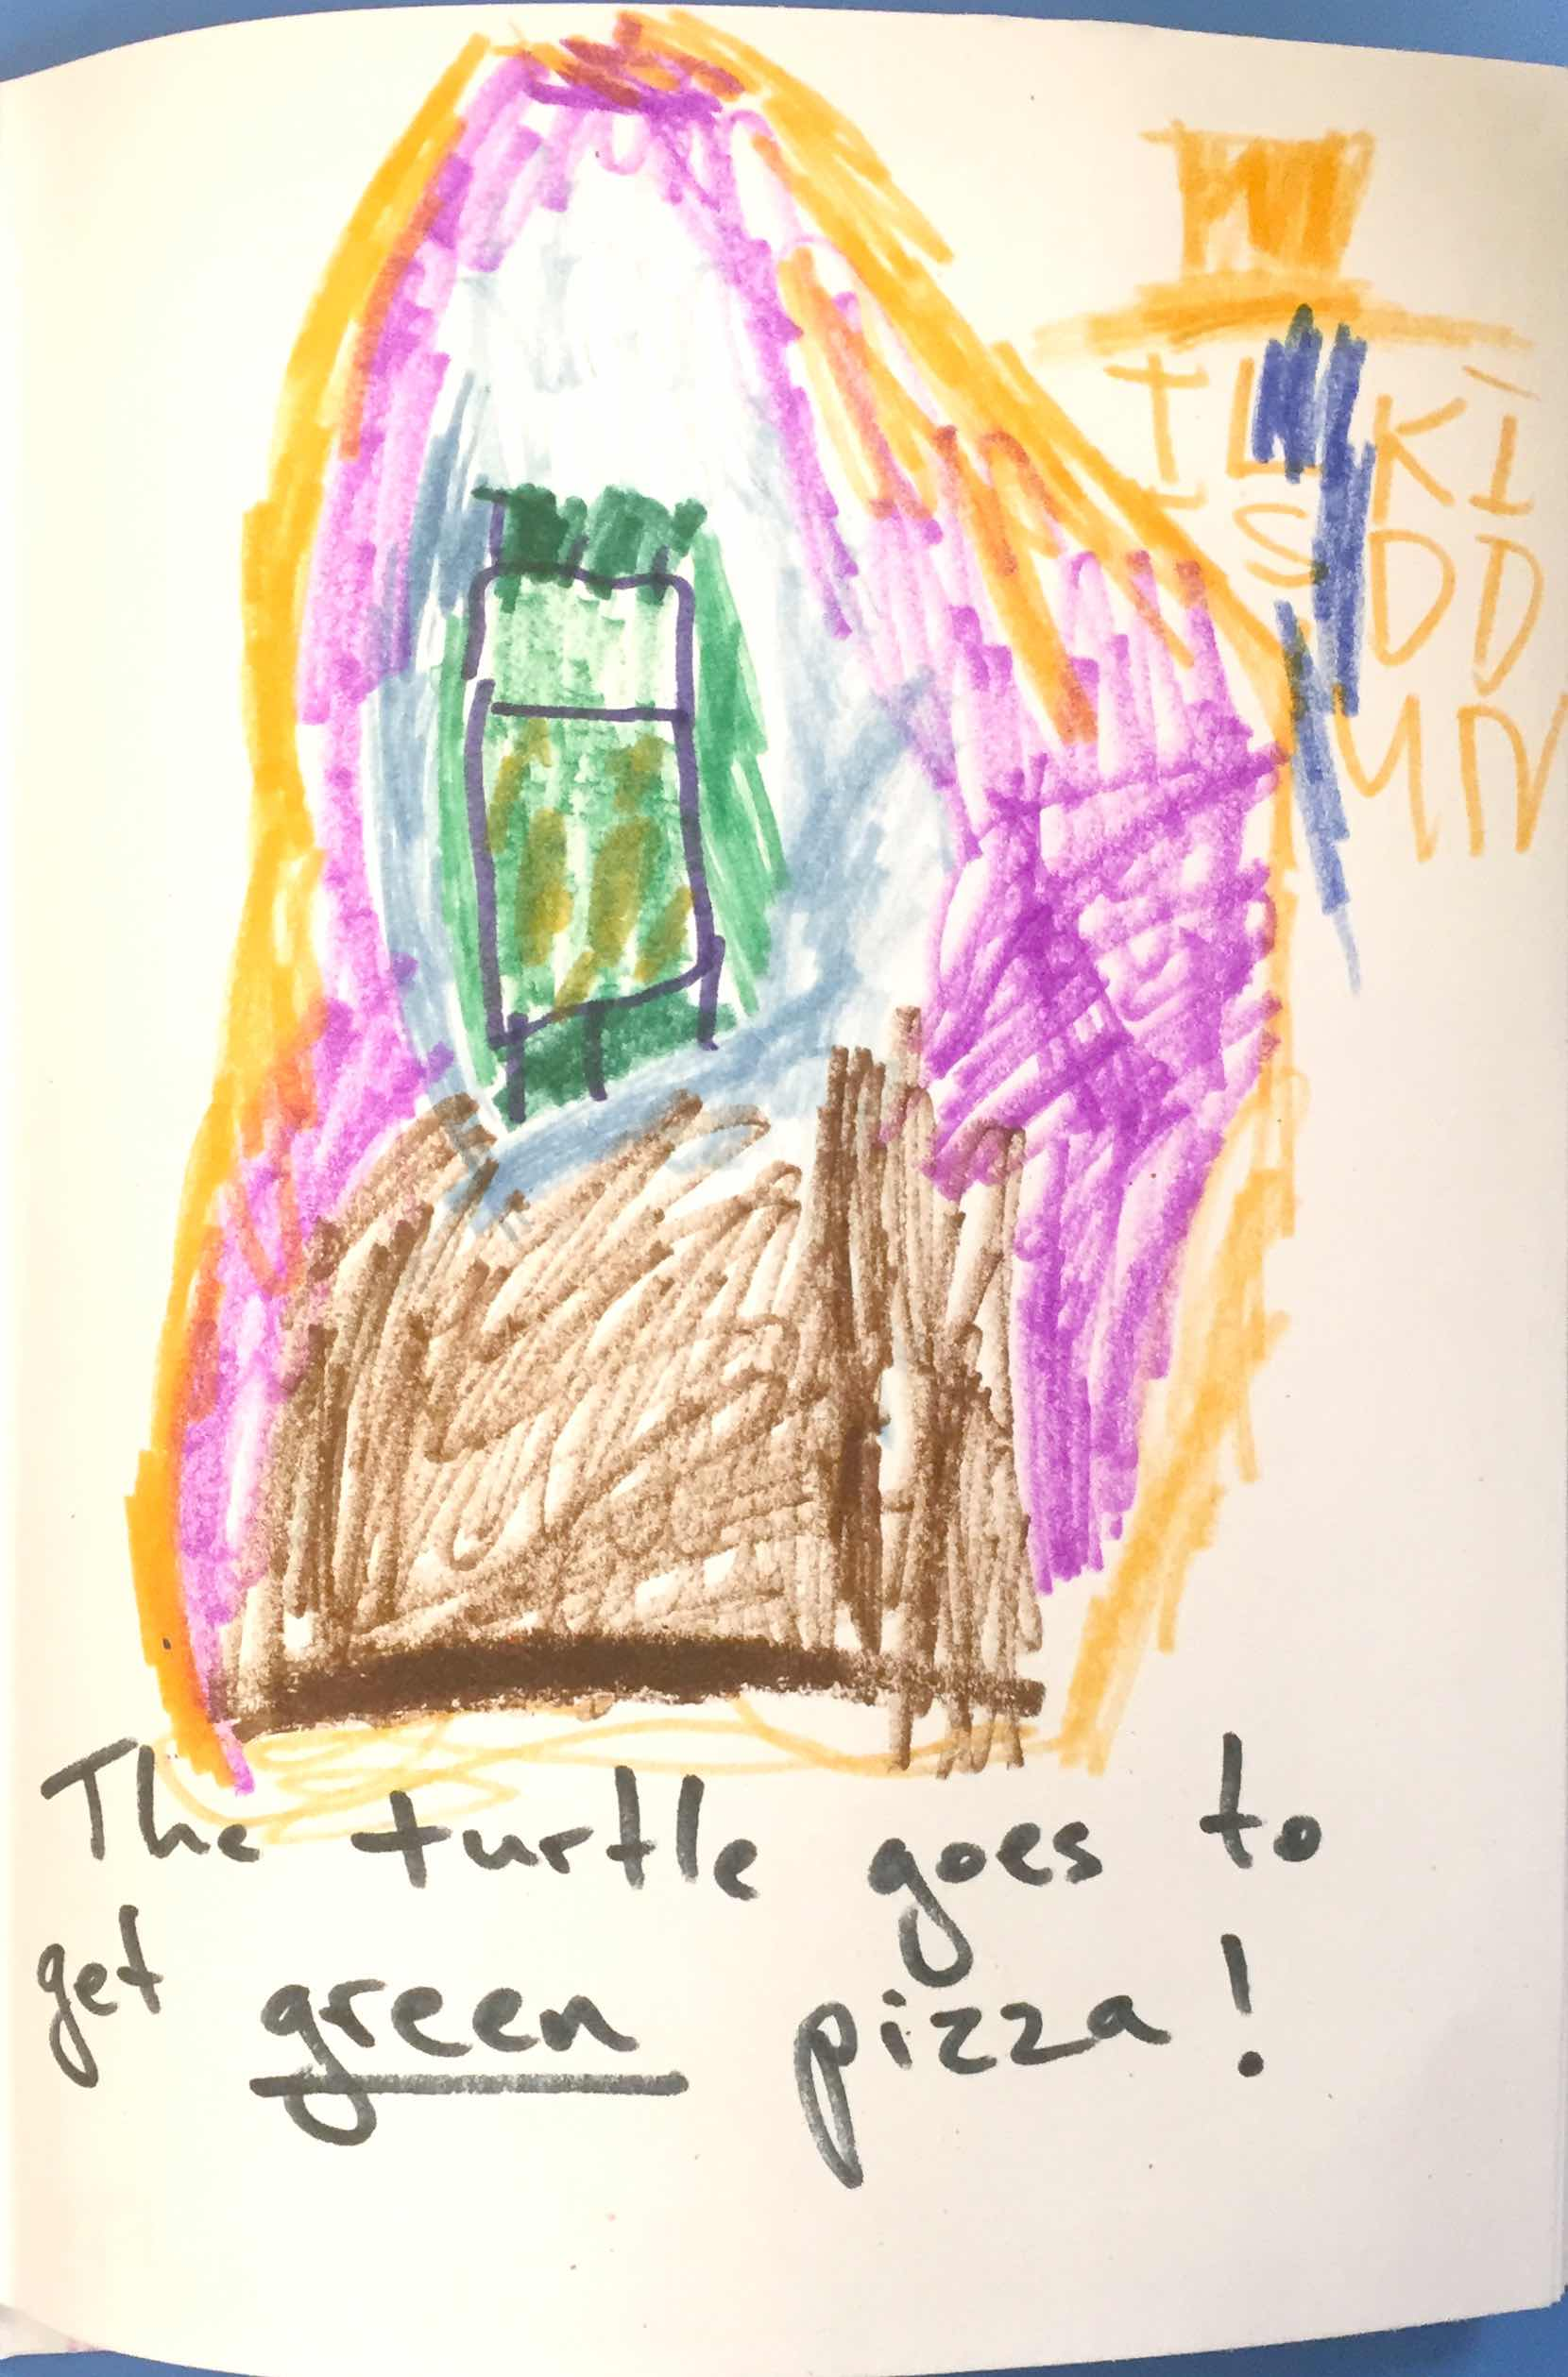 Sing Me A Story Stories The Turtle Goes To Get Pizza